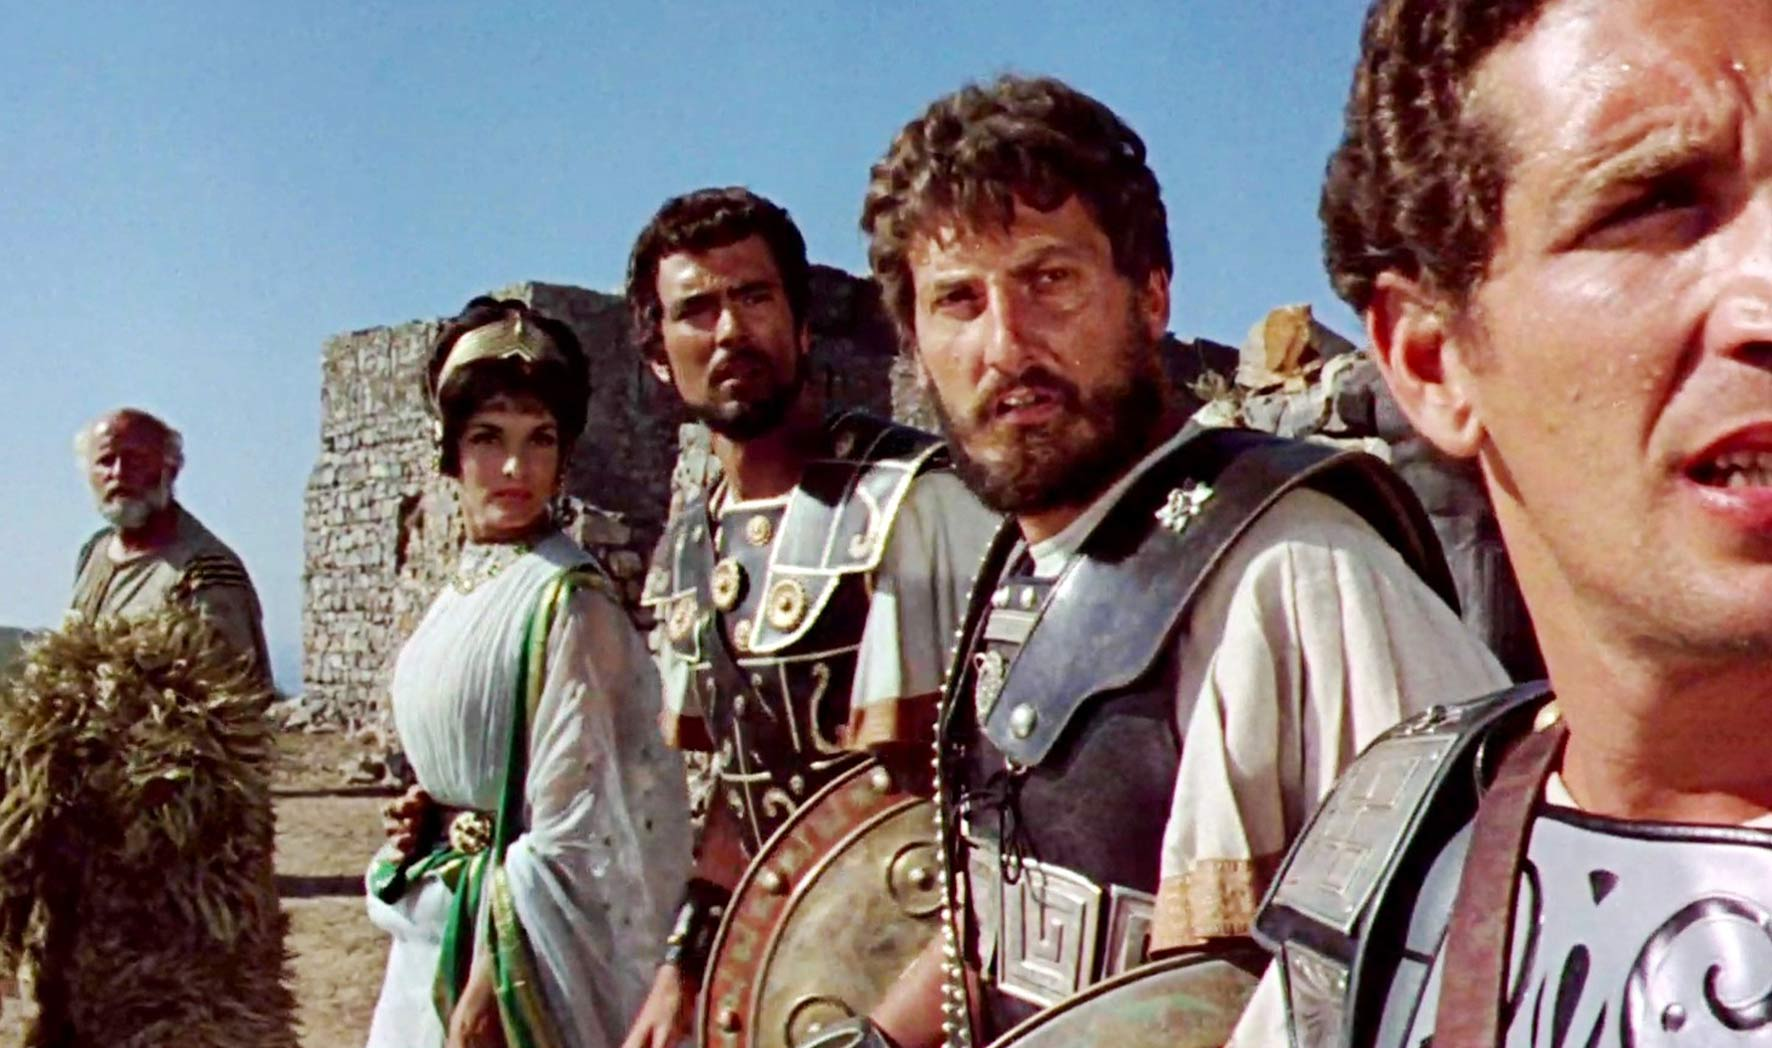 More Info for Jason and the Argonauts (1963)